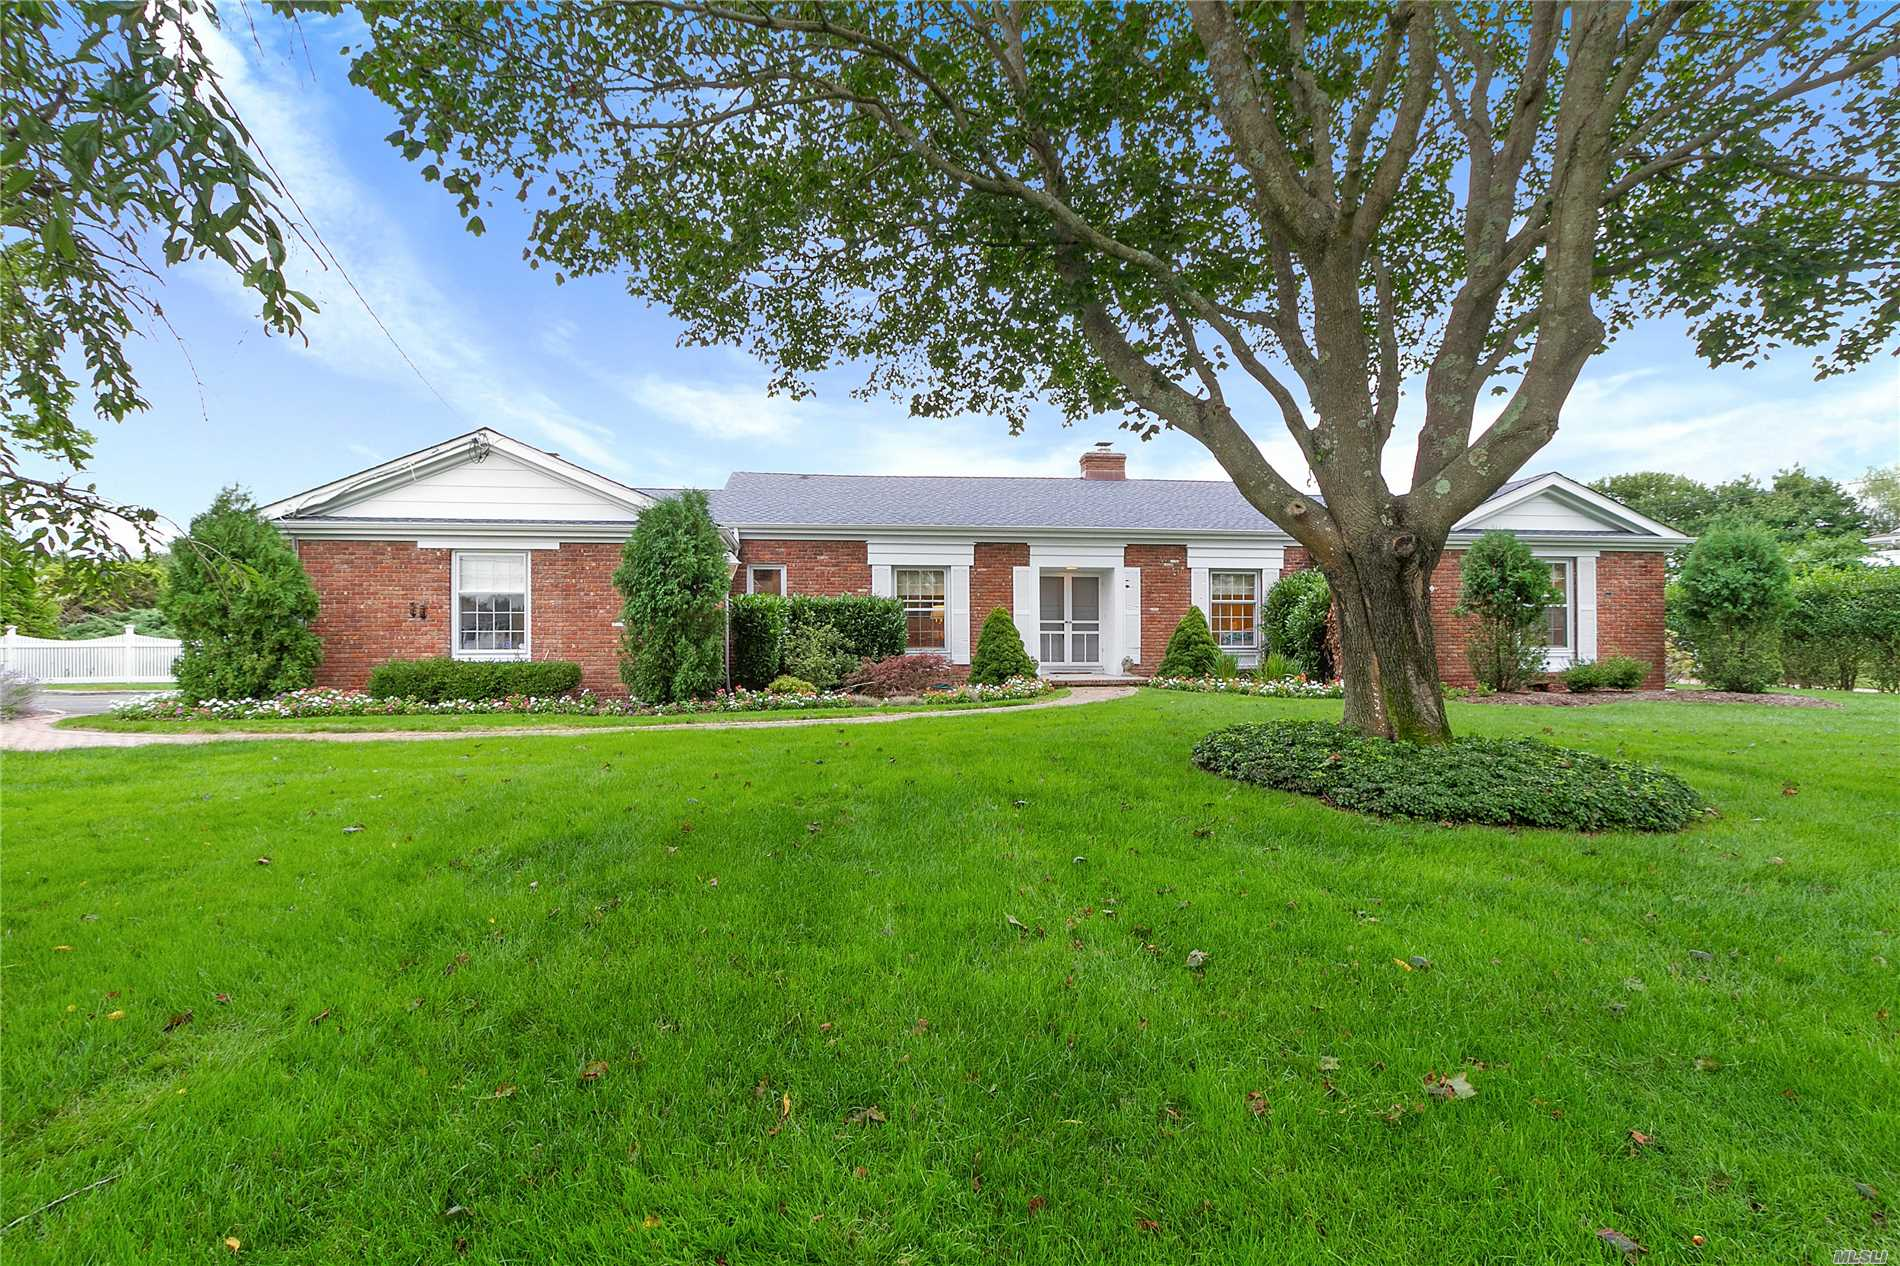 Photo of home for sale at 64 Bayfield Ln, Westhampton Bch NY